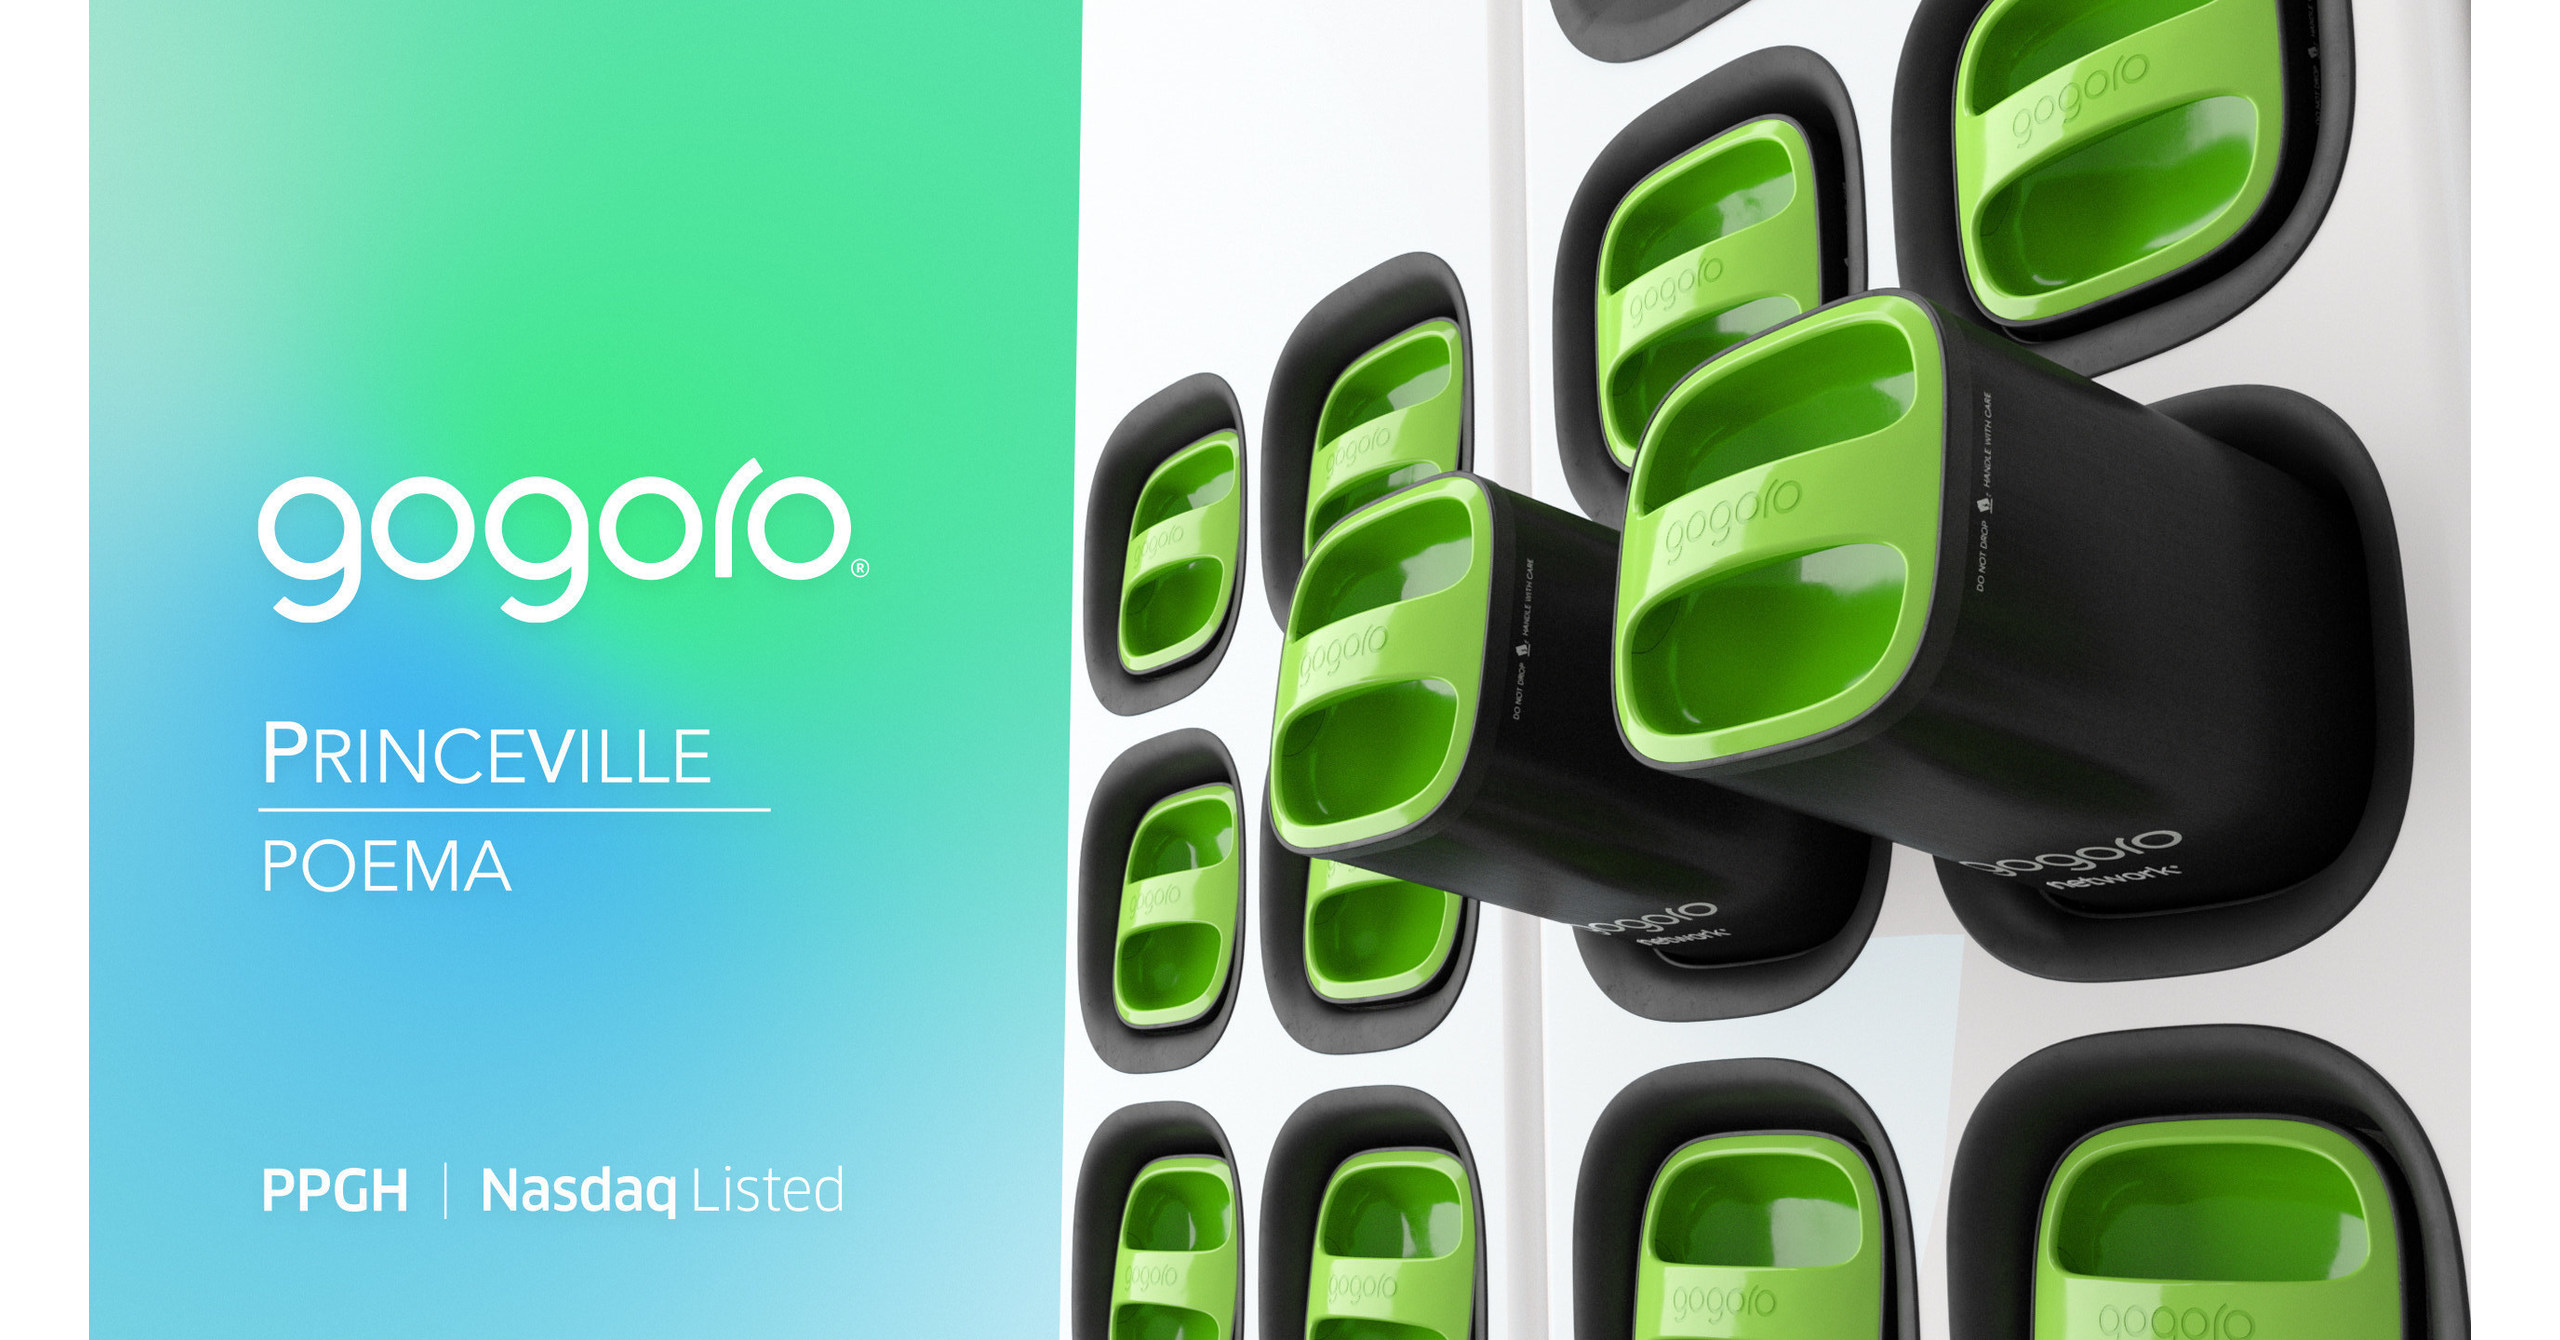 Access here alternative investment news about Gogoro, A Technology Leader In Urban Electric Mobility And Battery Swapping, To List On Nasdaq Through A Merger With Poema Global Holdings Corp.